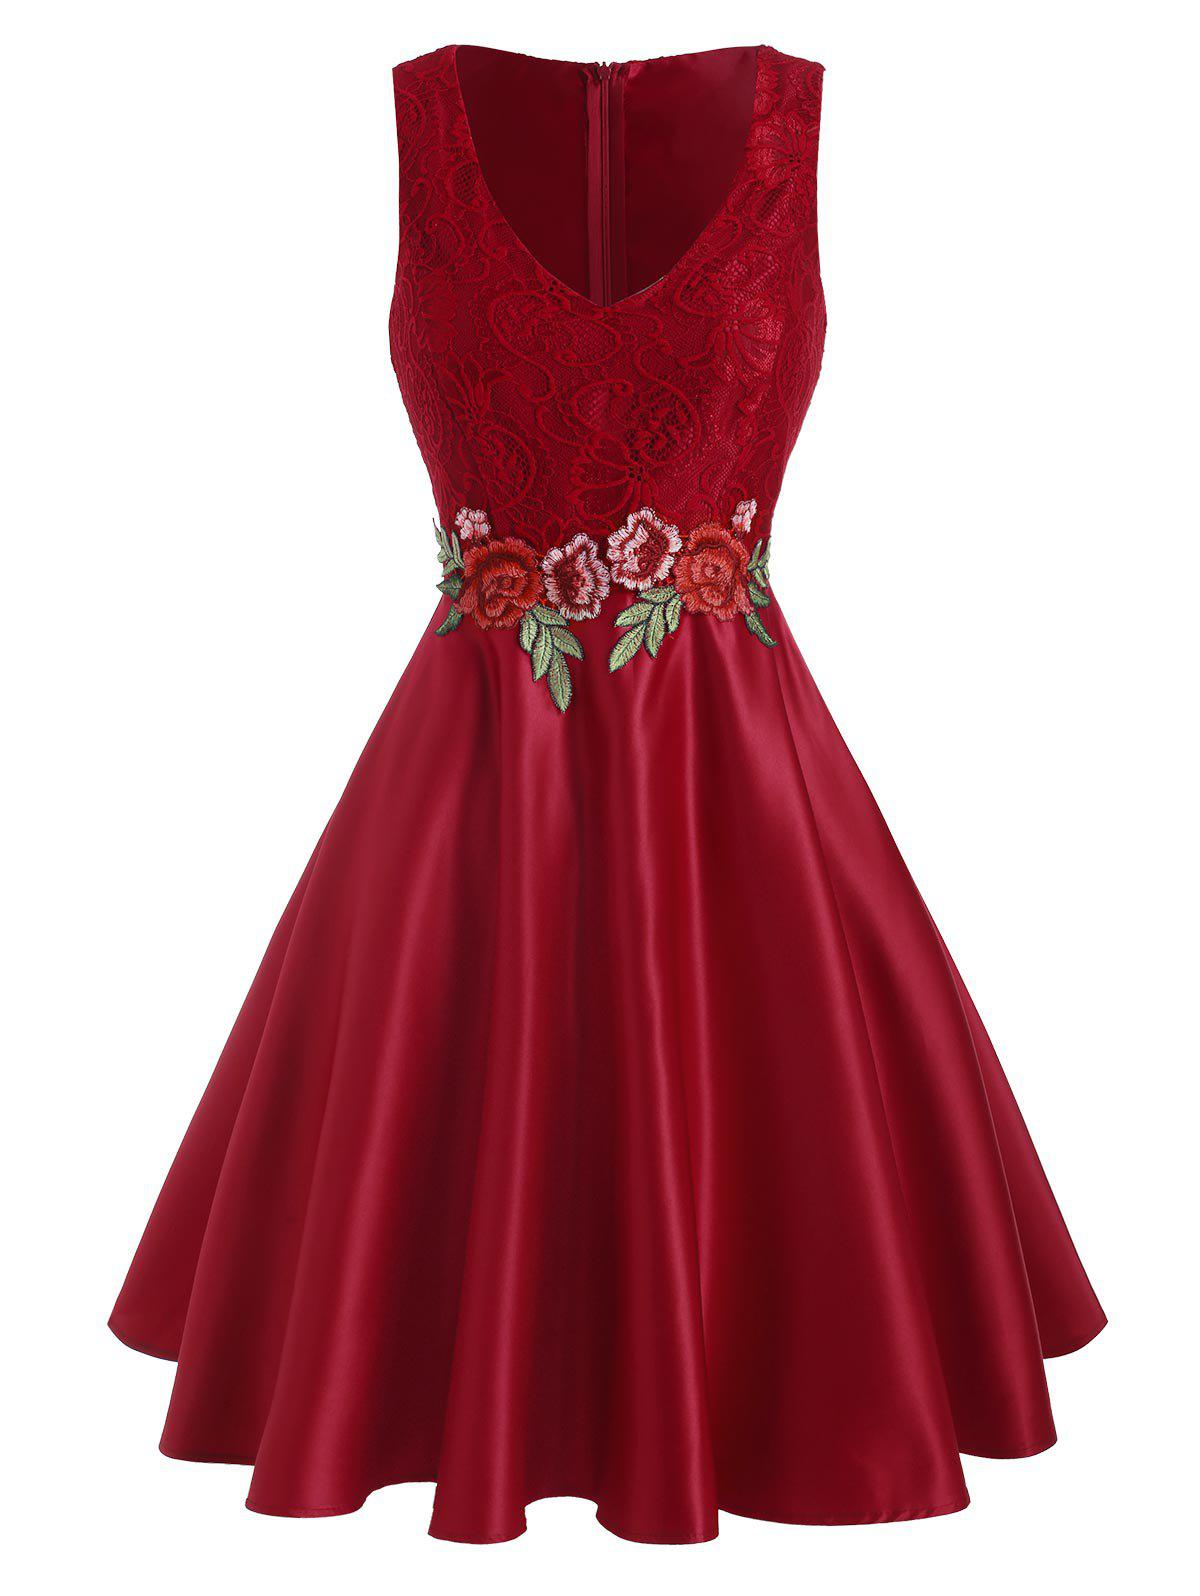 Lace Panel Floral Embroidered Applique Party Dress - RED M